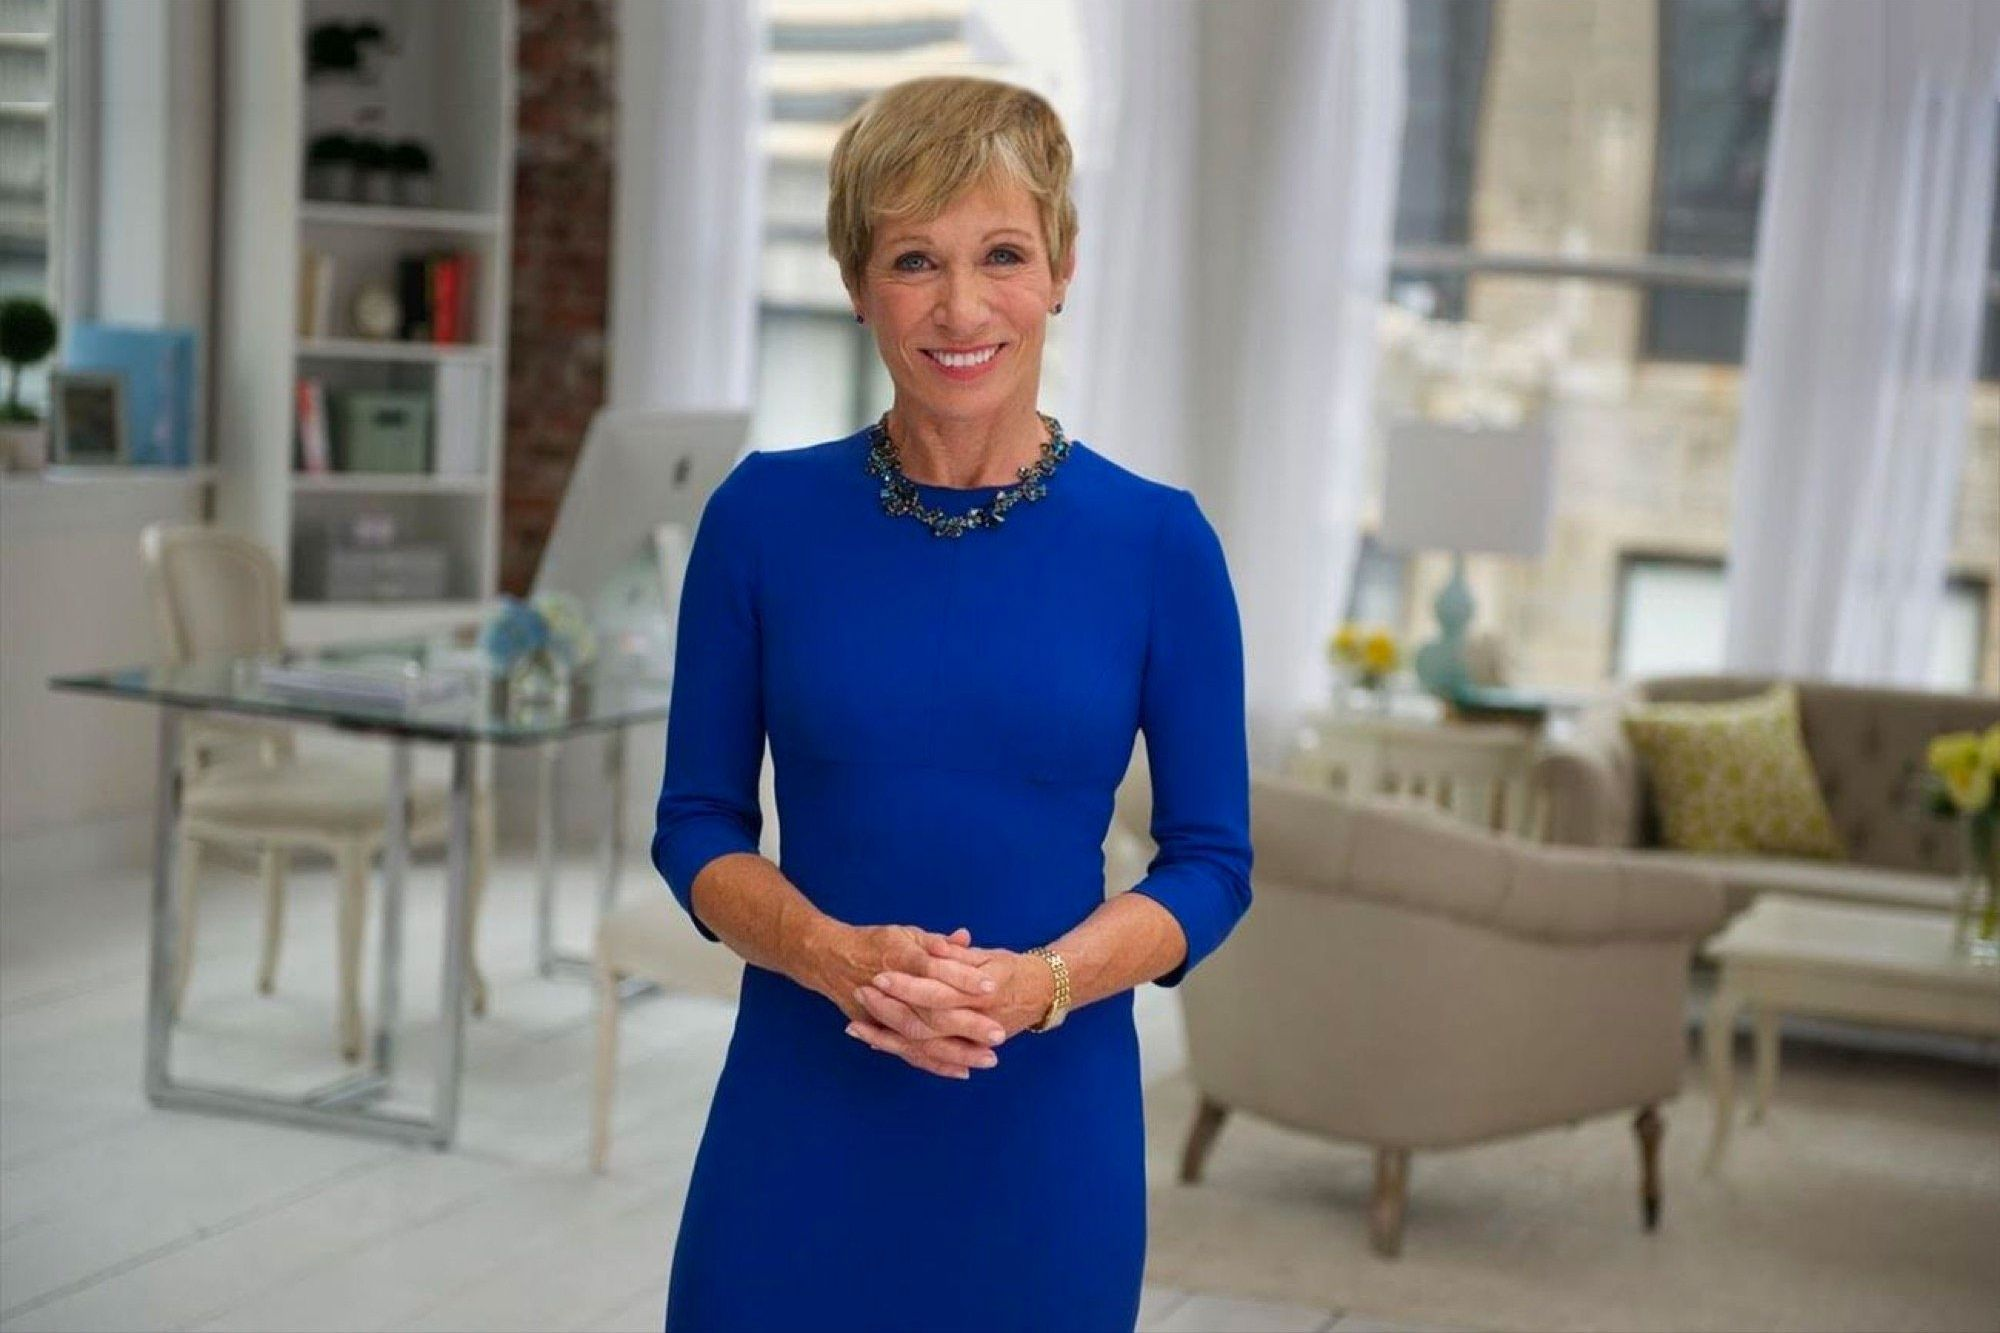 (Podcast) Barbara Corcoran Reveals How to Not Be Afraid of Taking Risks